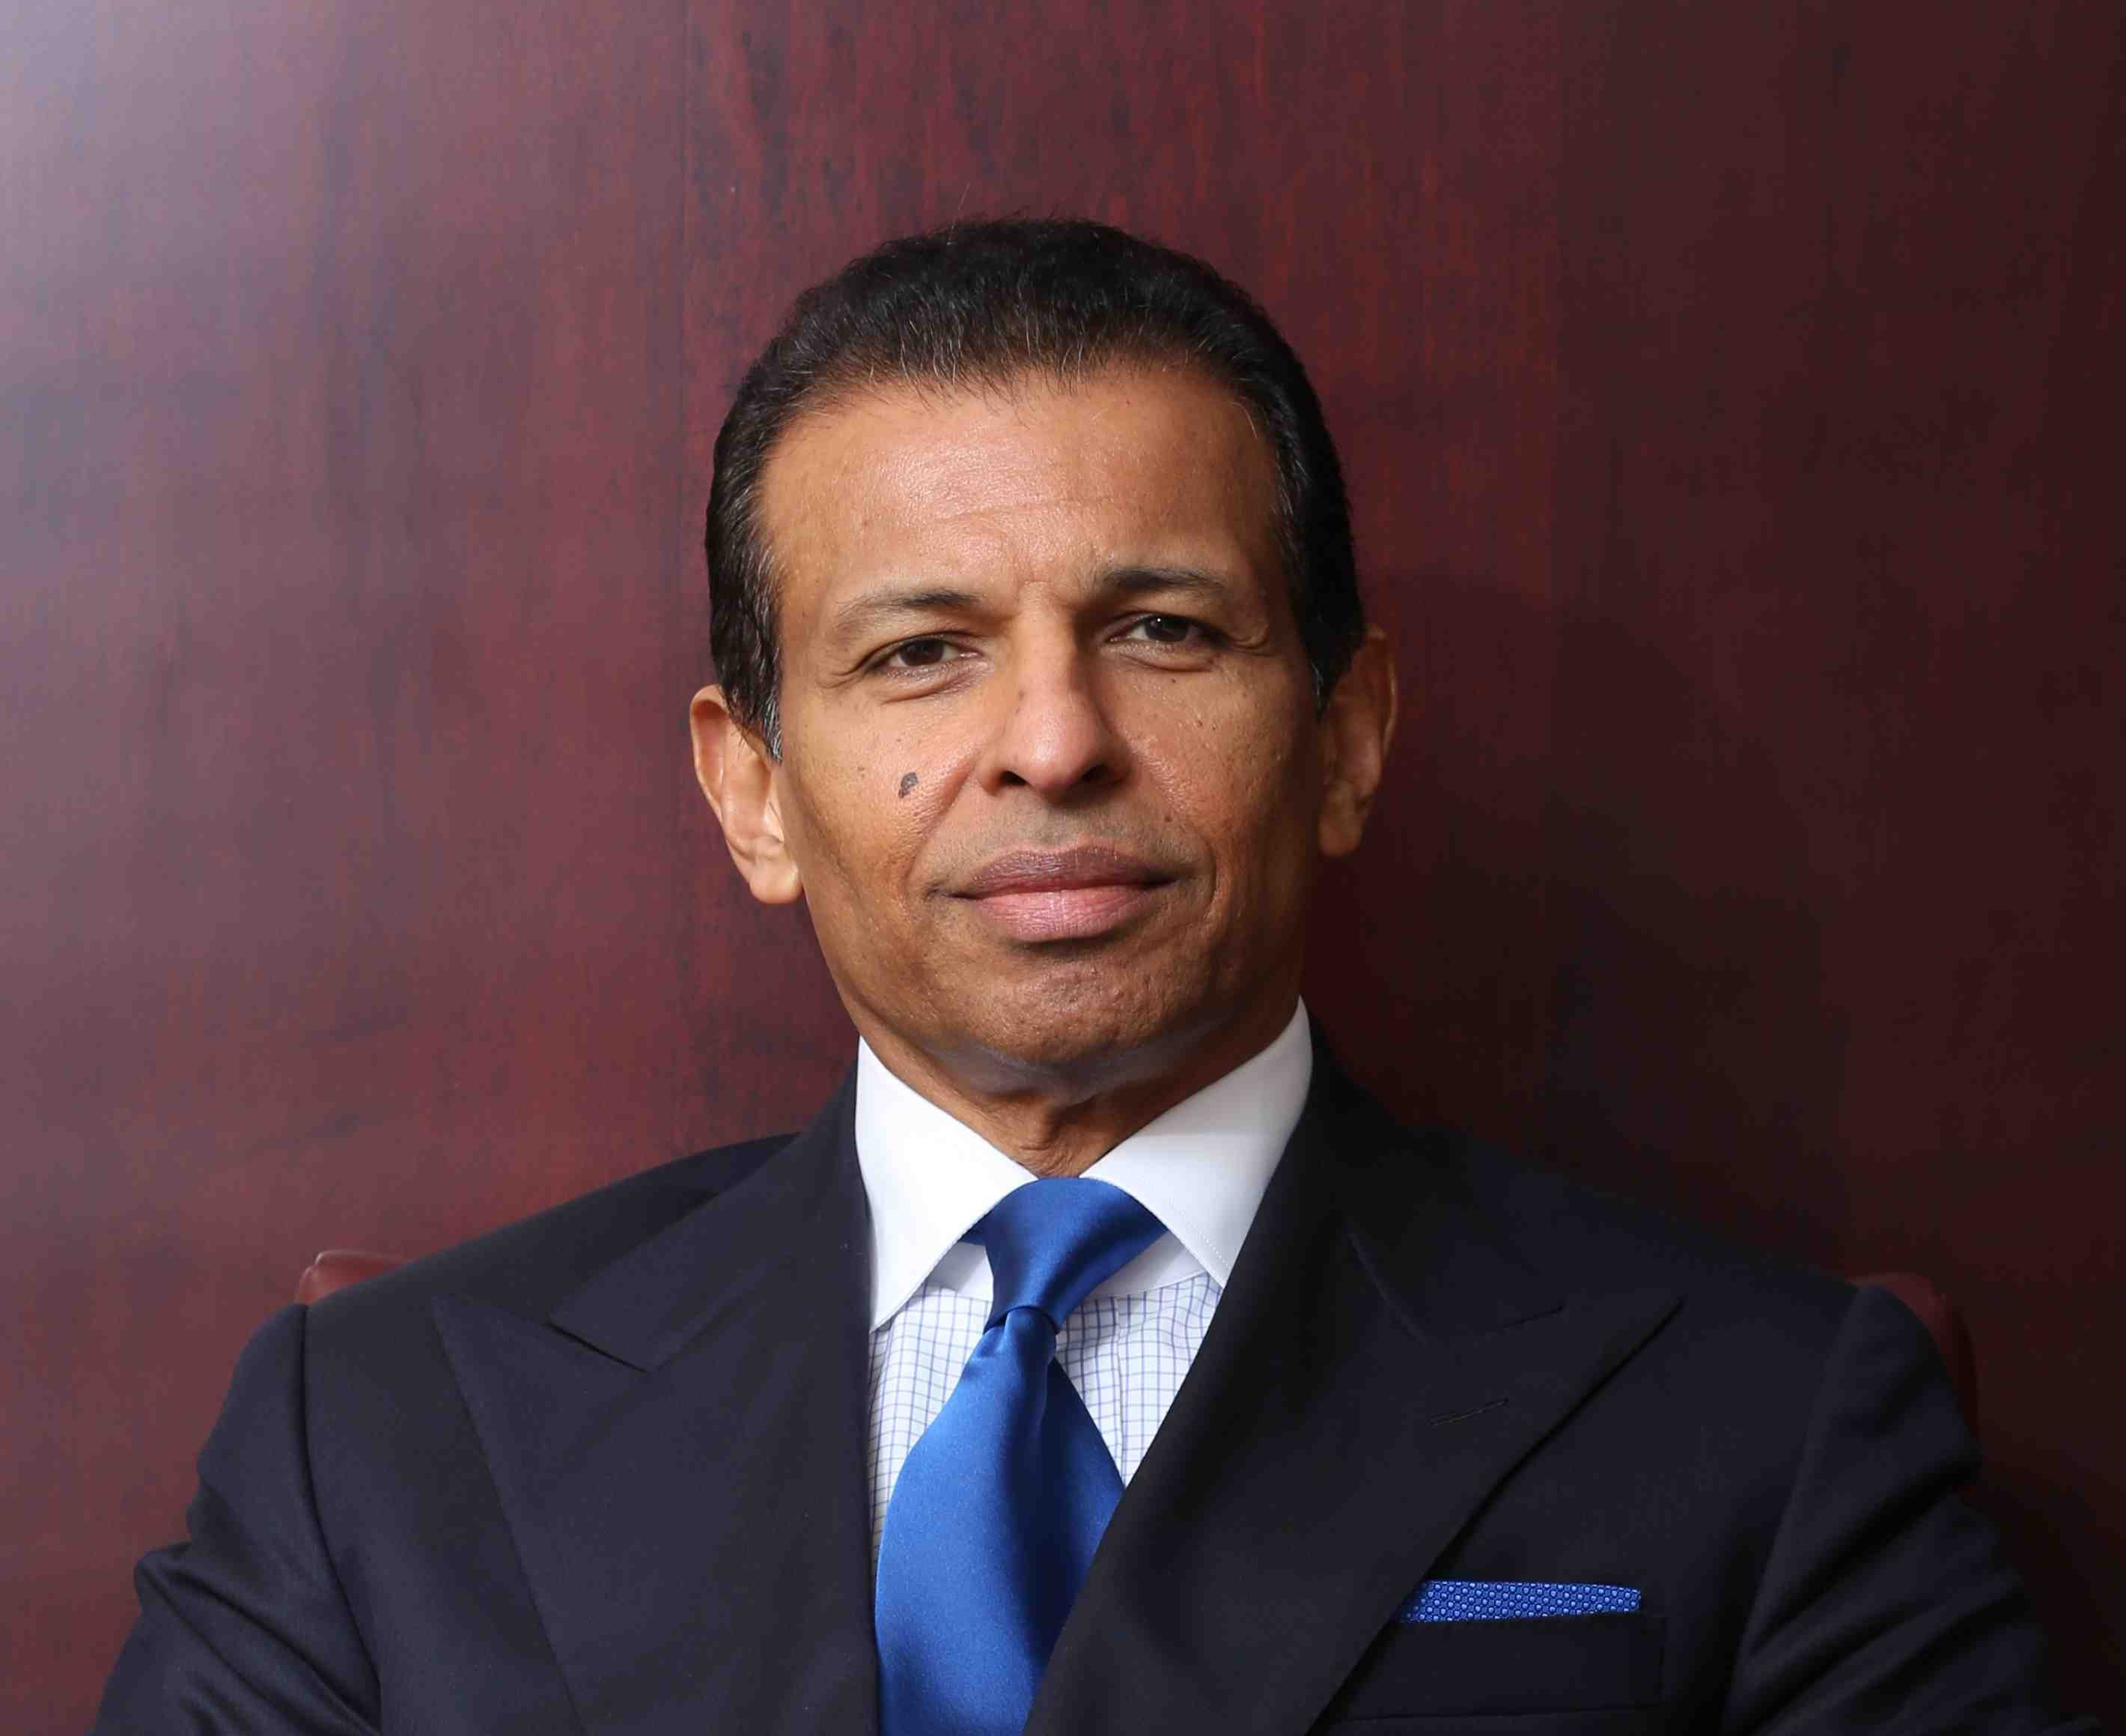 Exclusive Interview: GEMS Chairman Sunny Varkey Talks Profits And Philanthropy